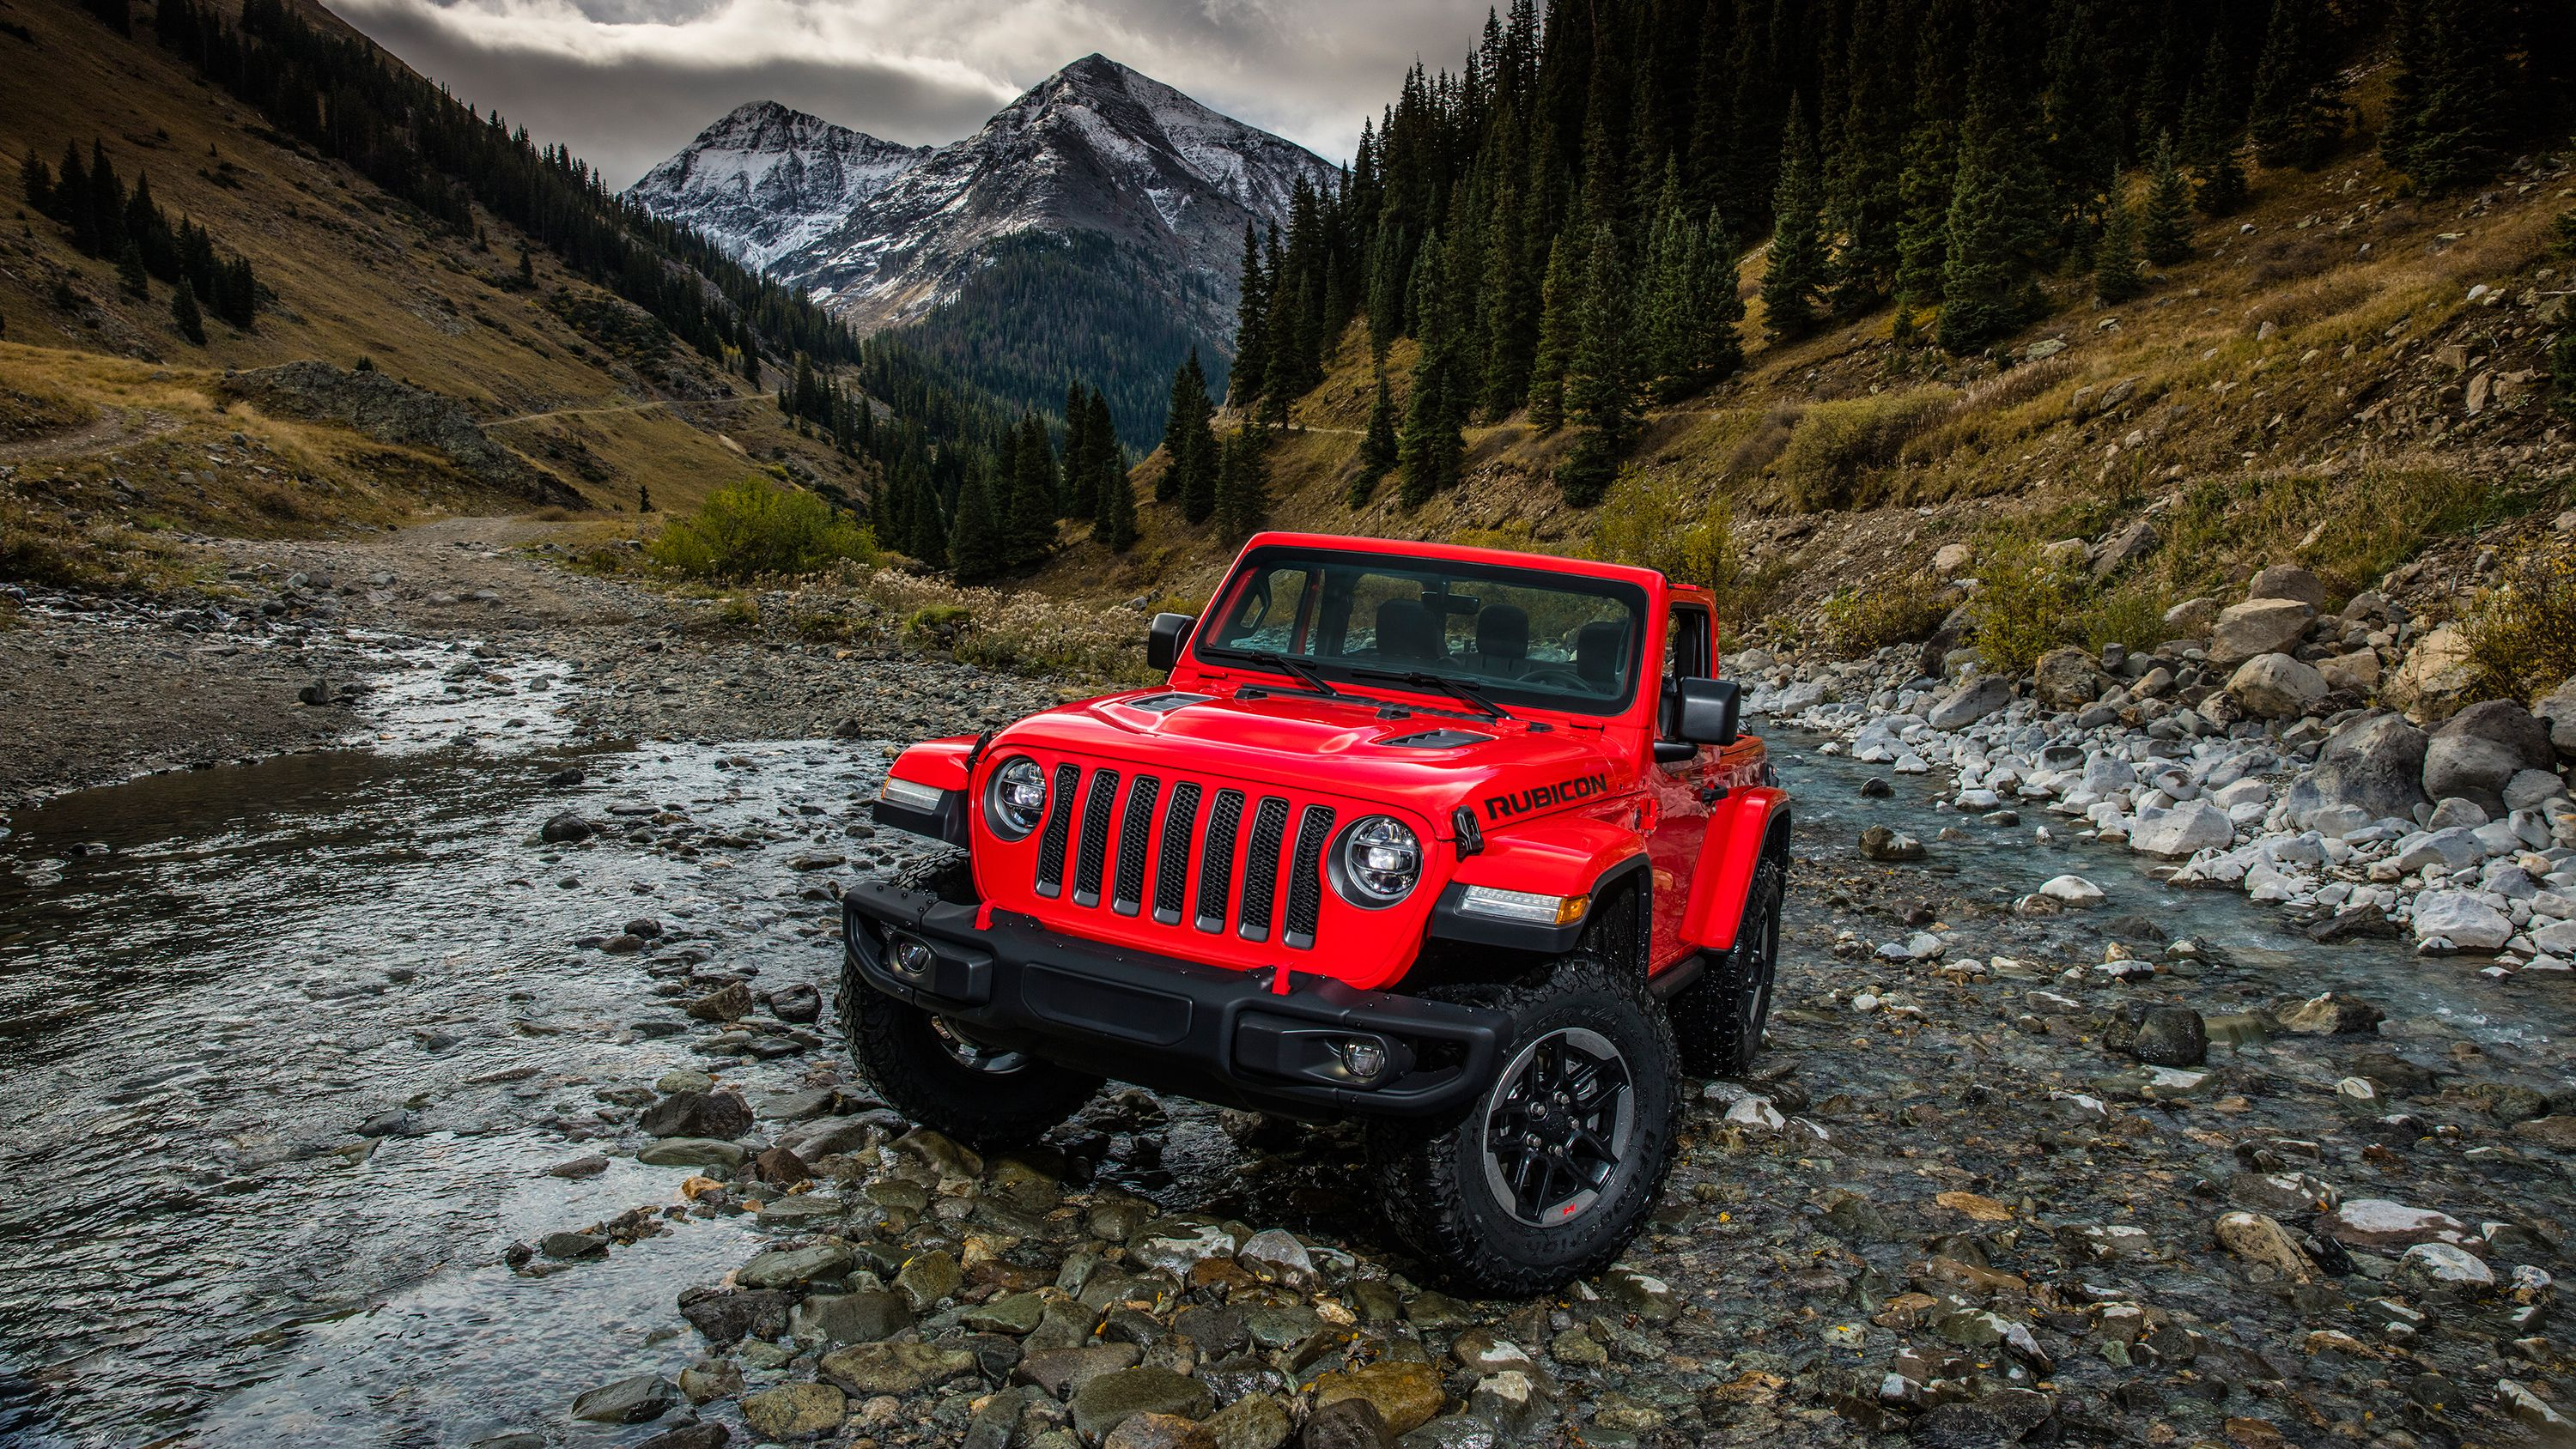 2018 Jeep Wrangler Rubicon Wallpapers